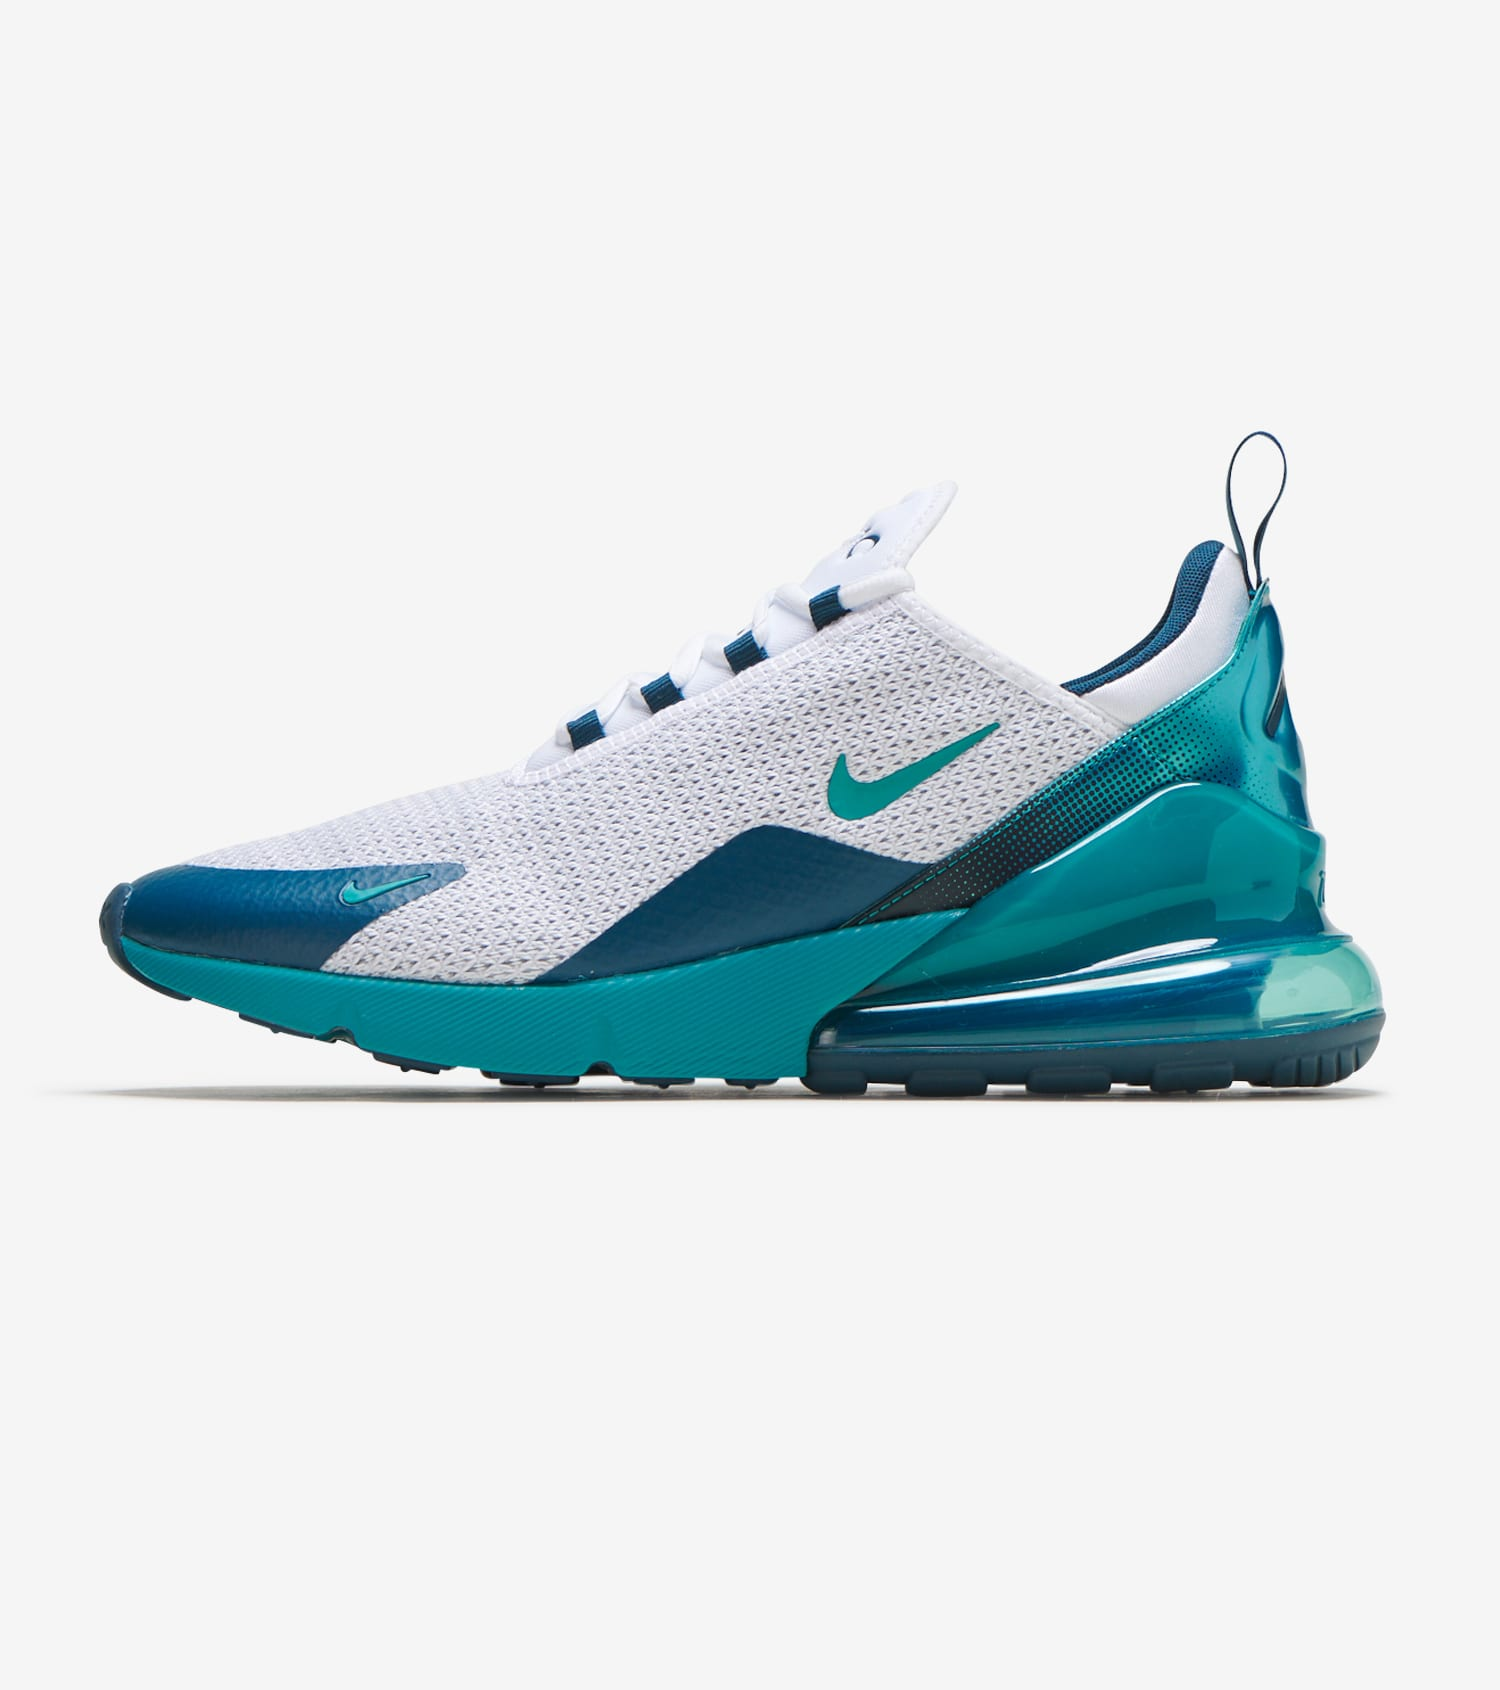 new arrival 05b56 31ee6 Air Max 270 SE